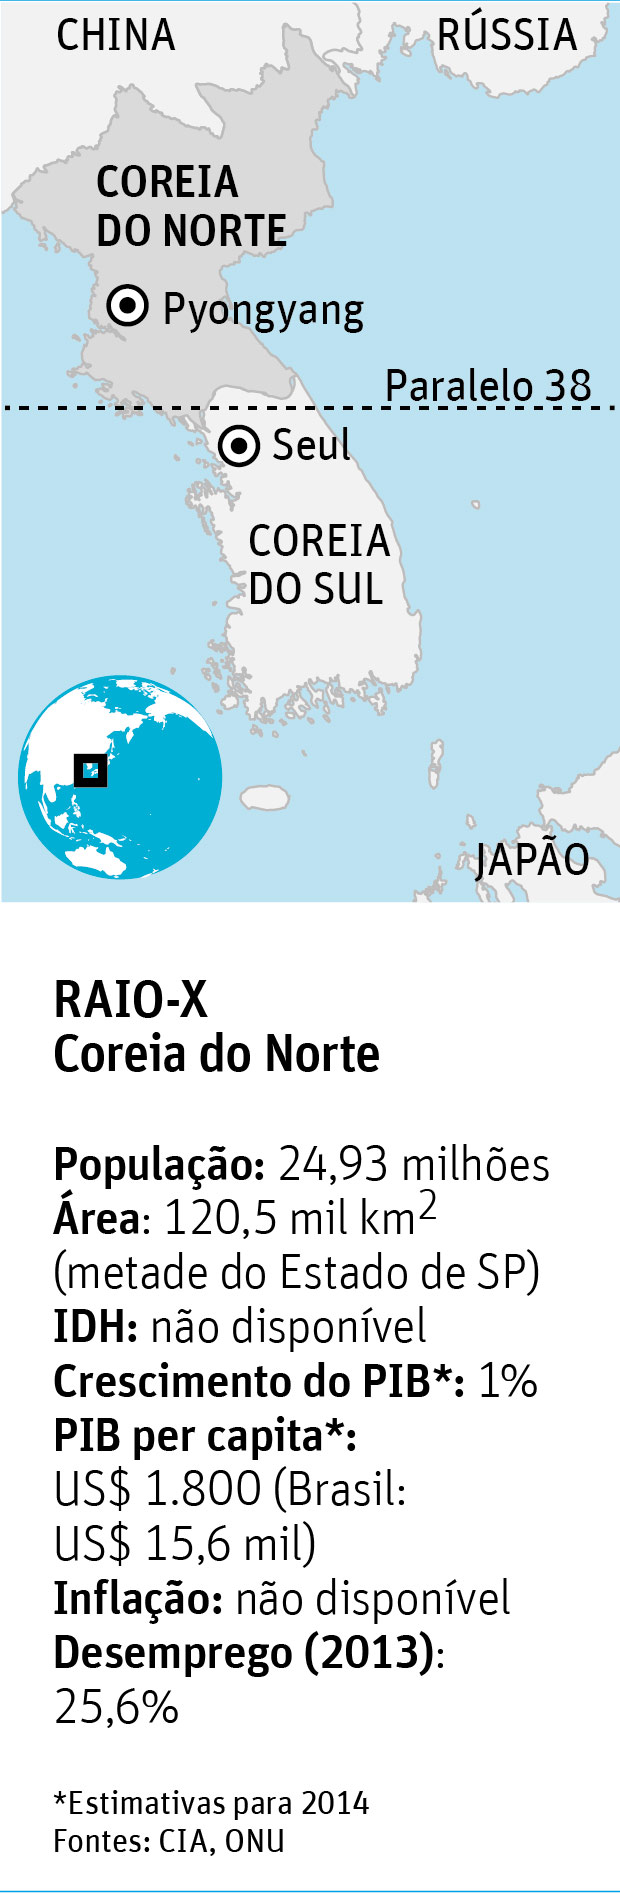 Raio-x Coreia do Norte